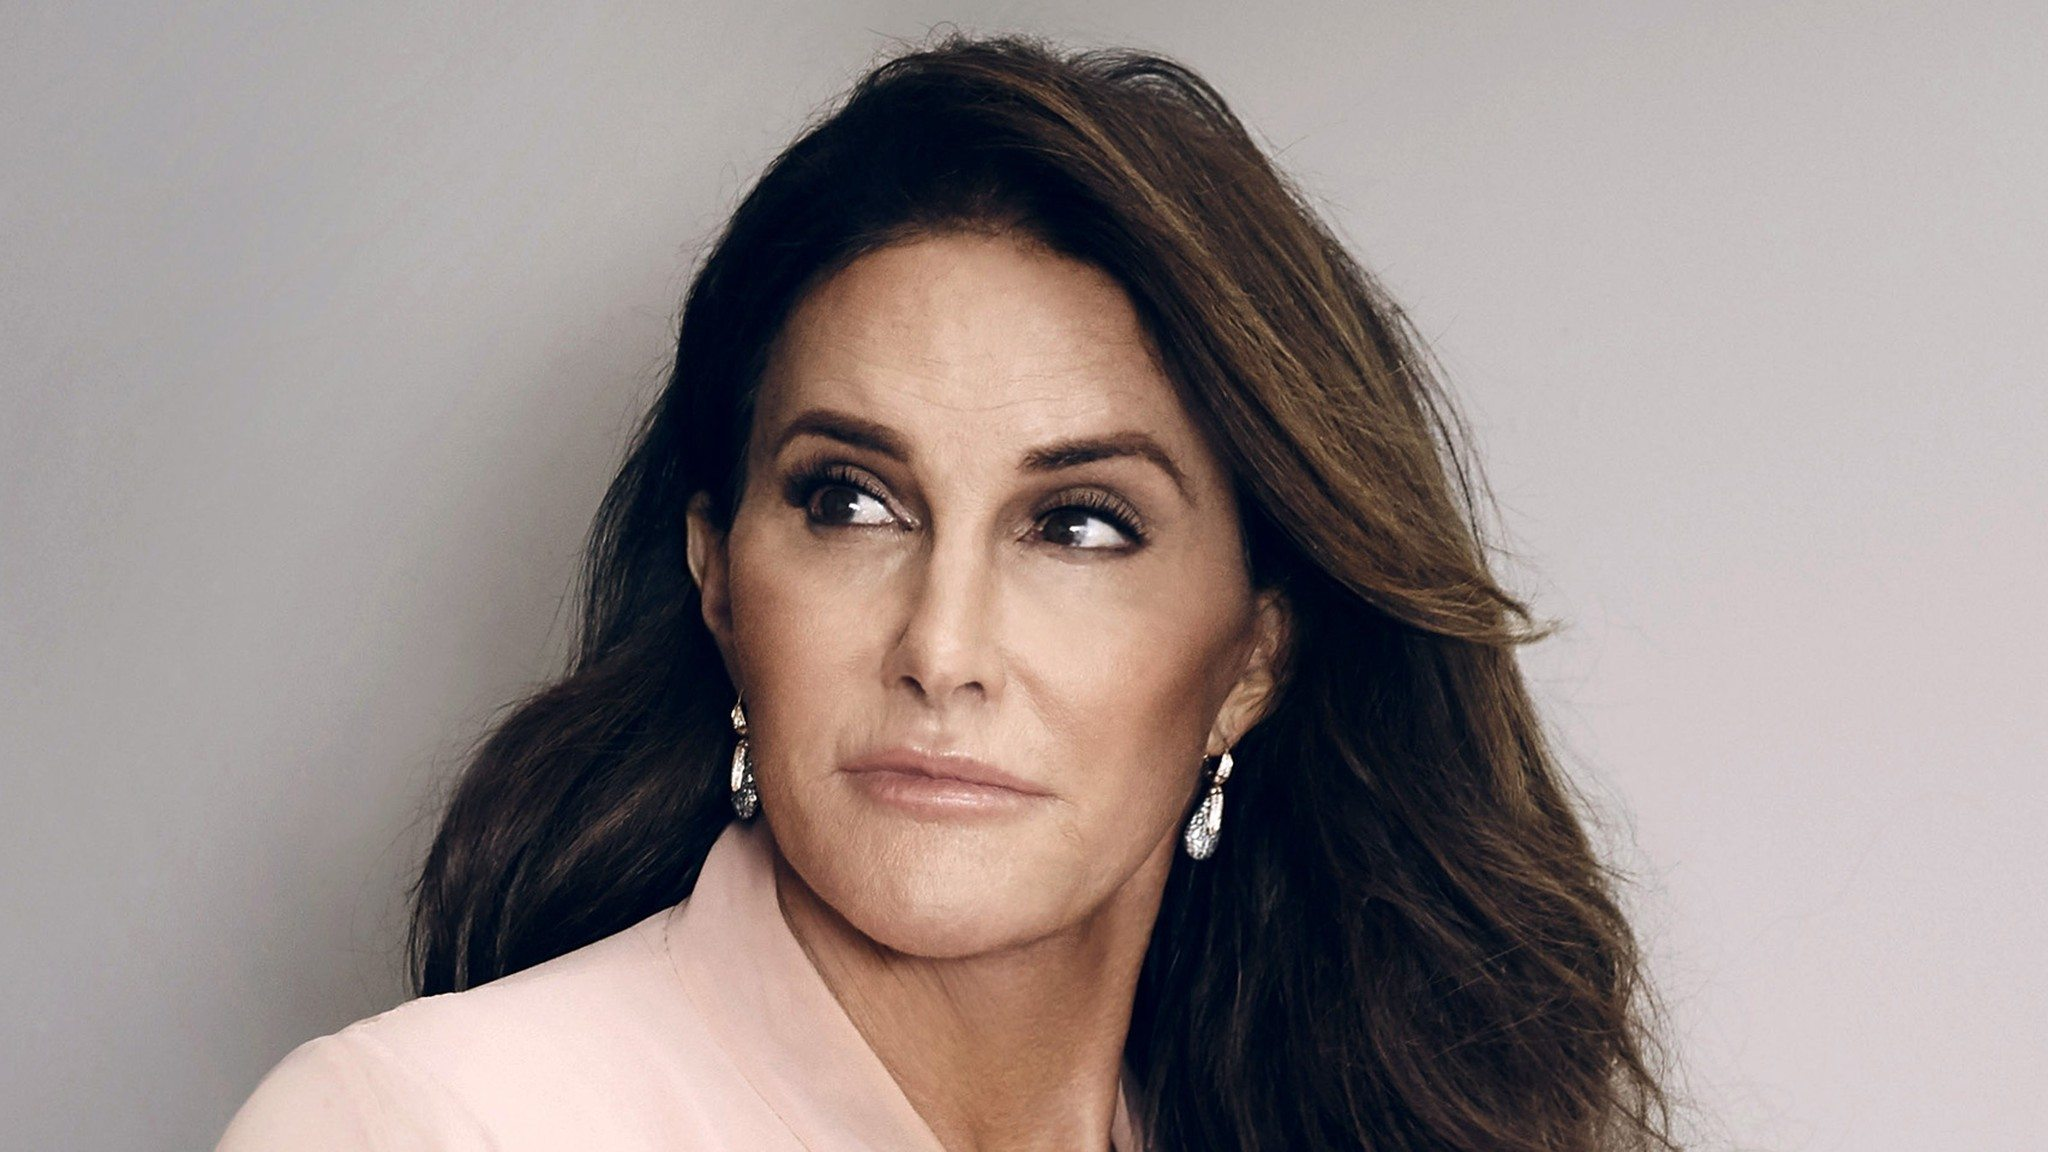 Caitlyn Jenner Bruce Jenner Gay Marriage Age Surgery